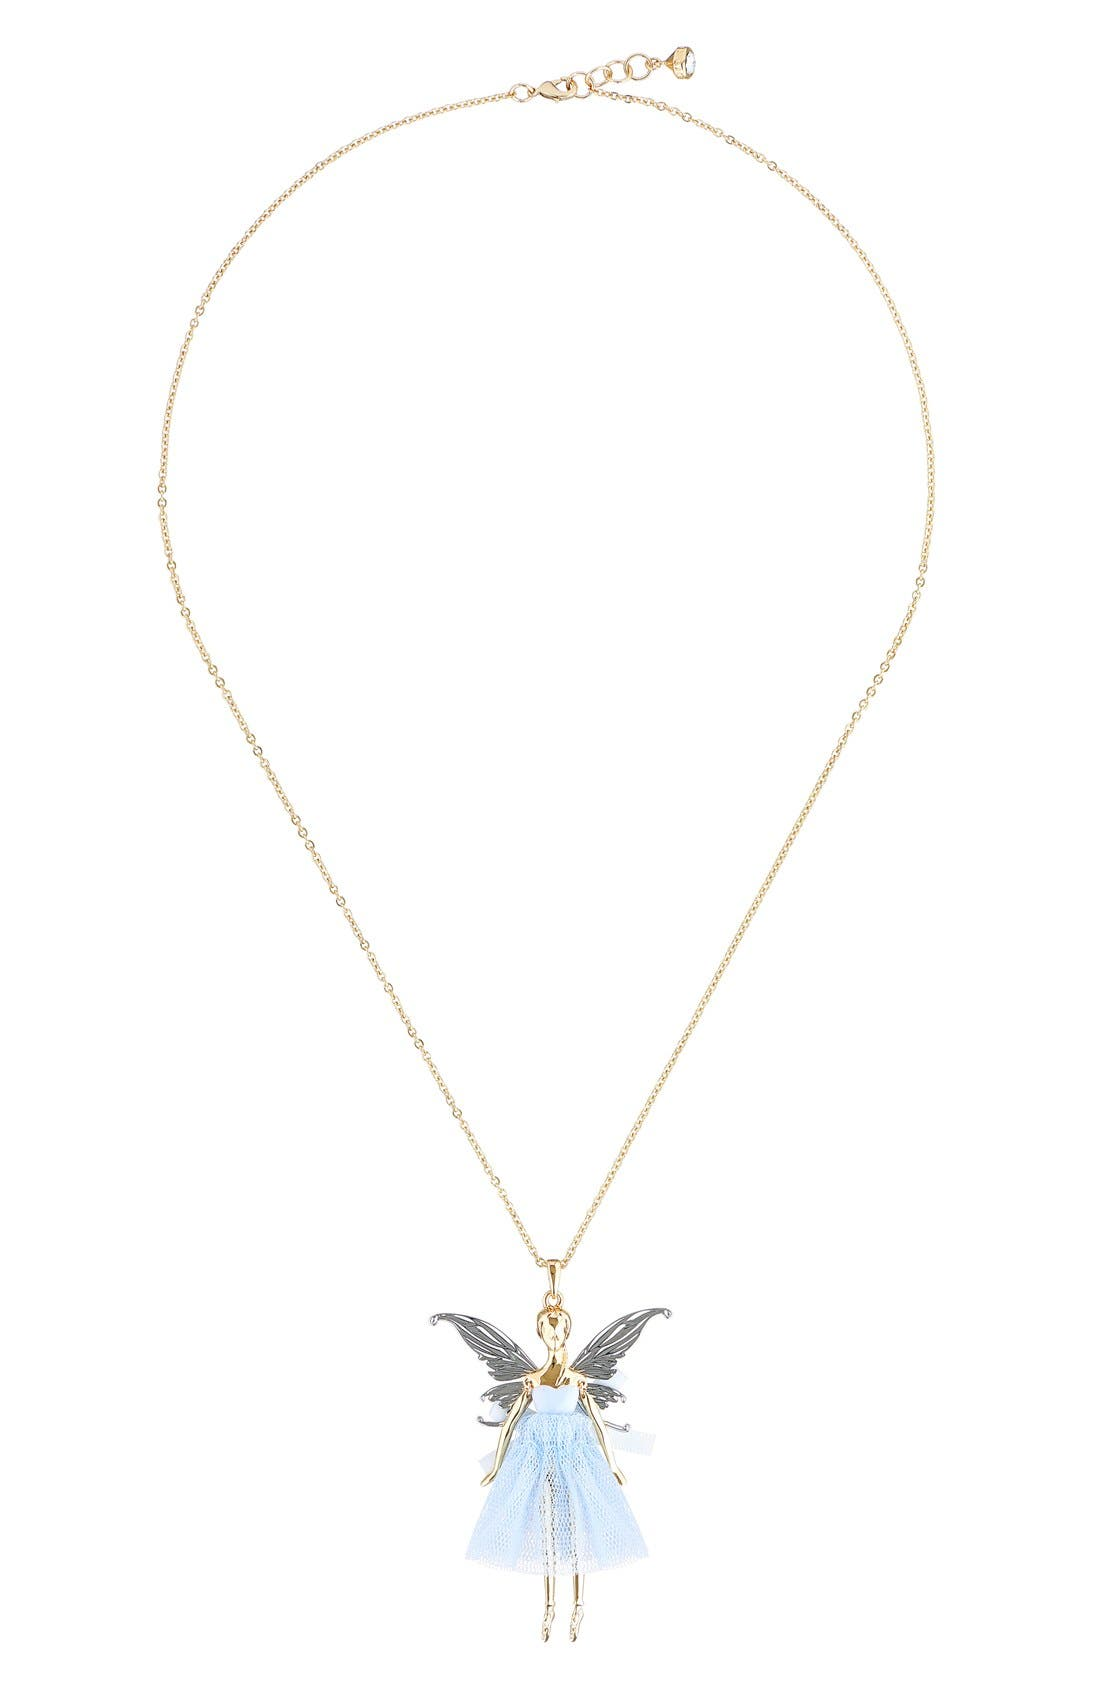 TED BAKER LONDON Titania Ballerina Necklace